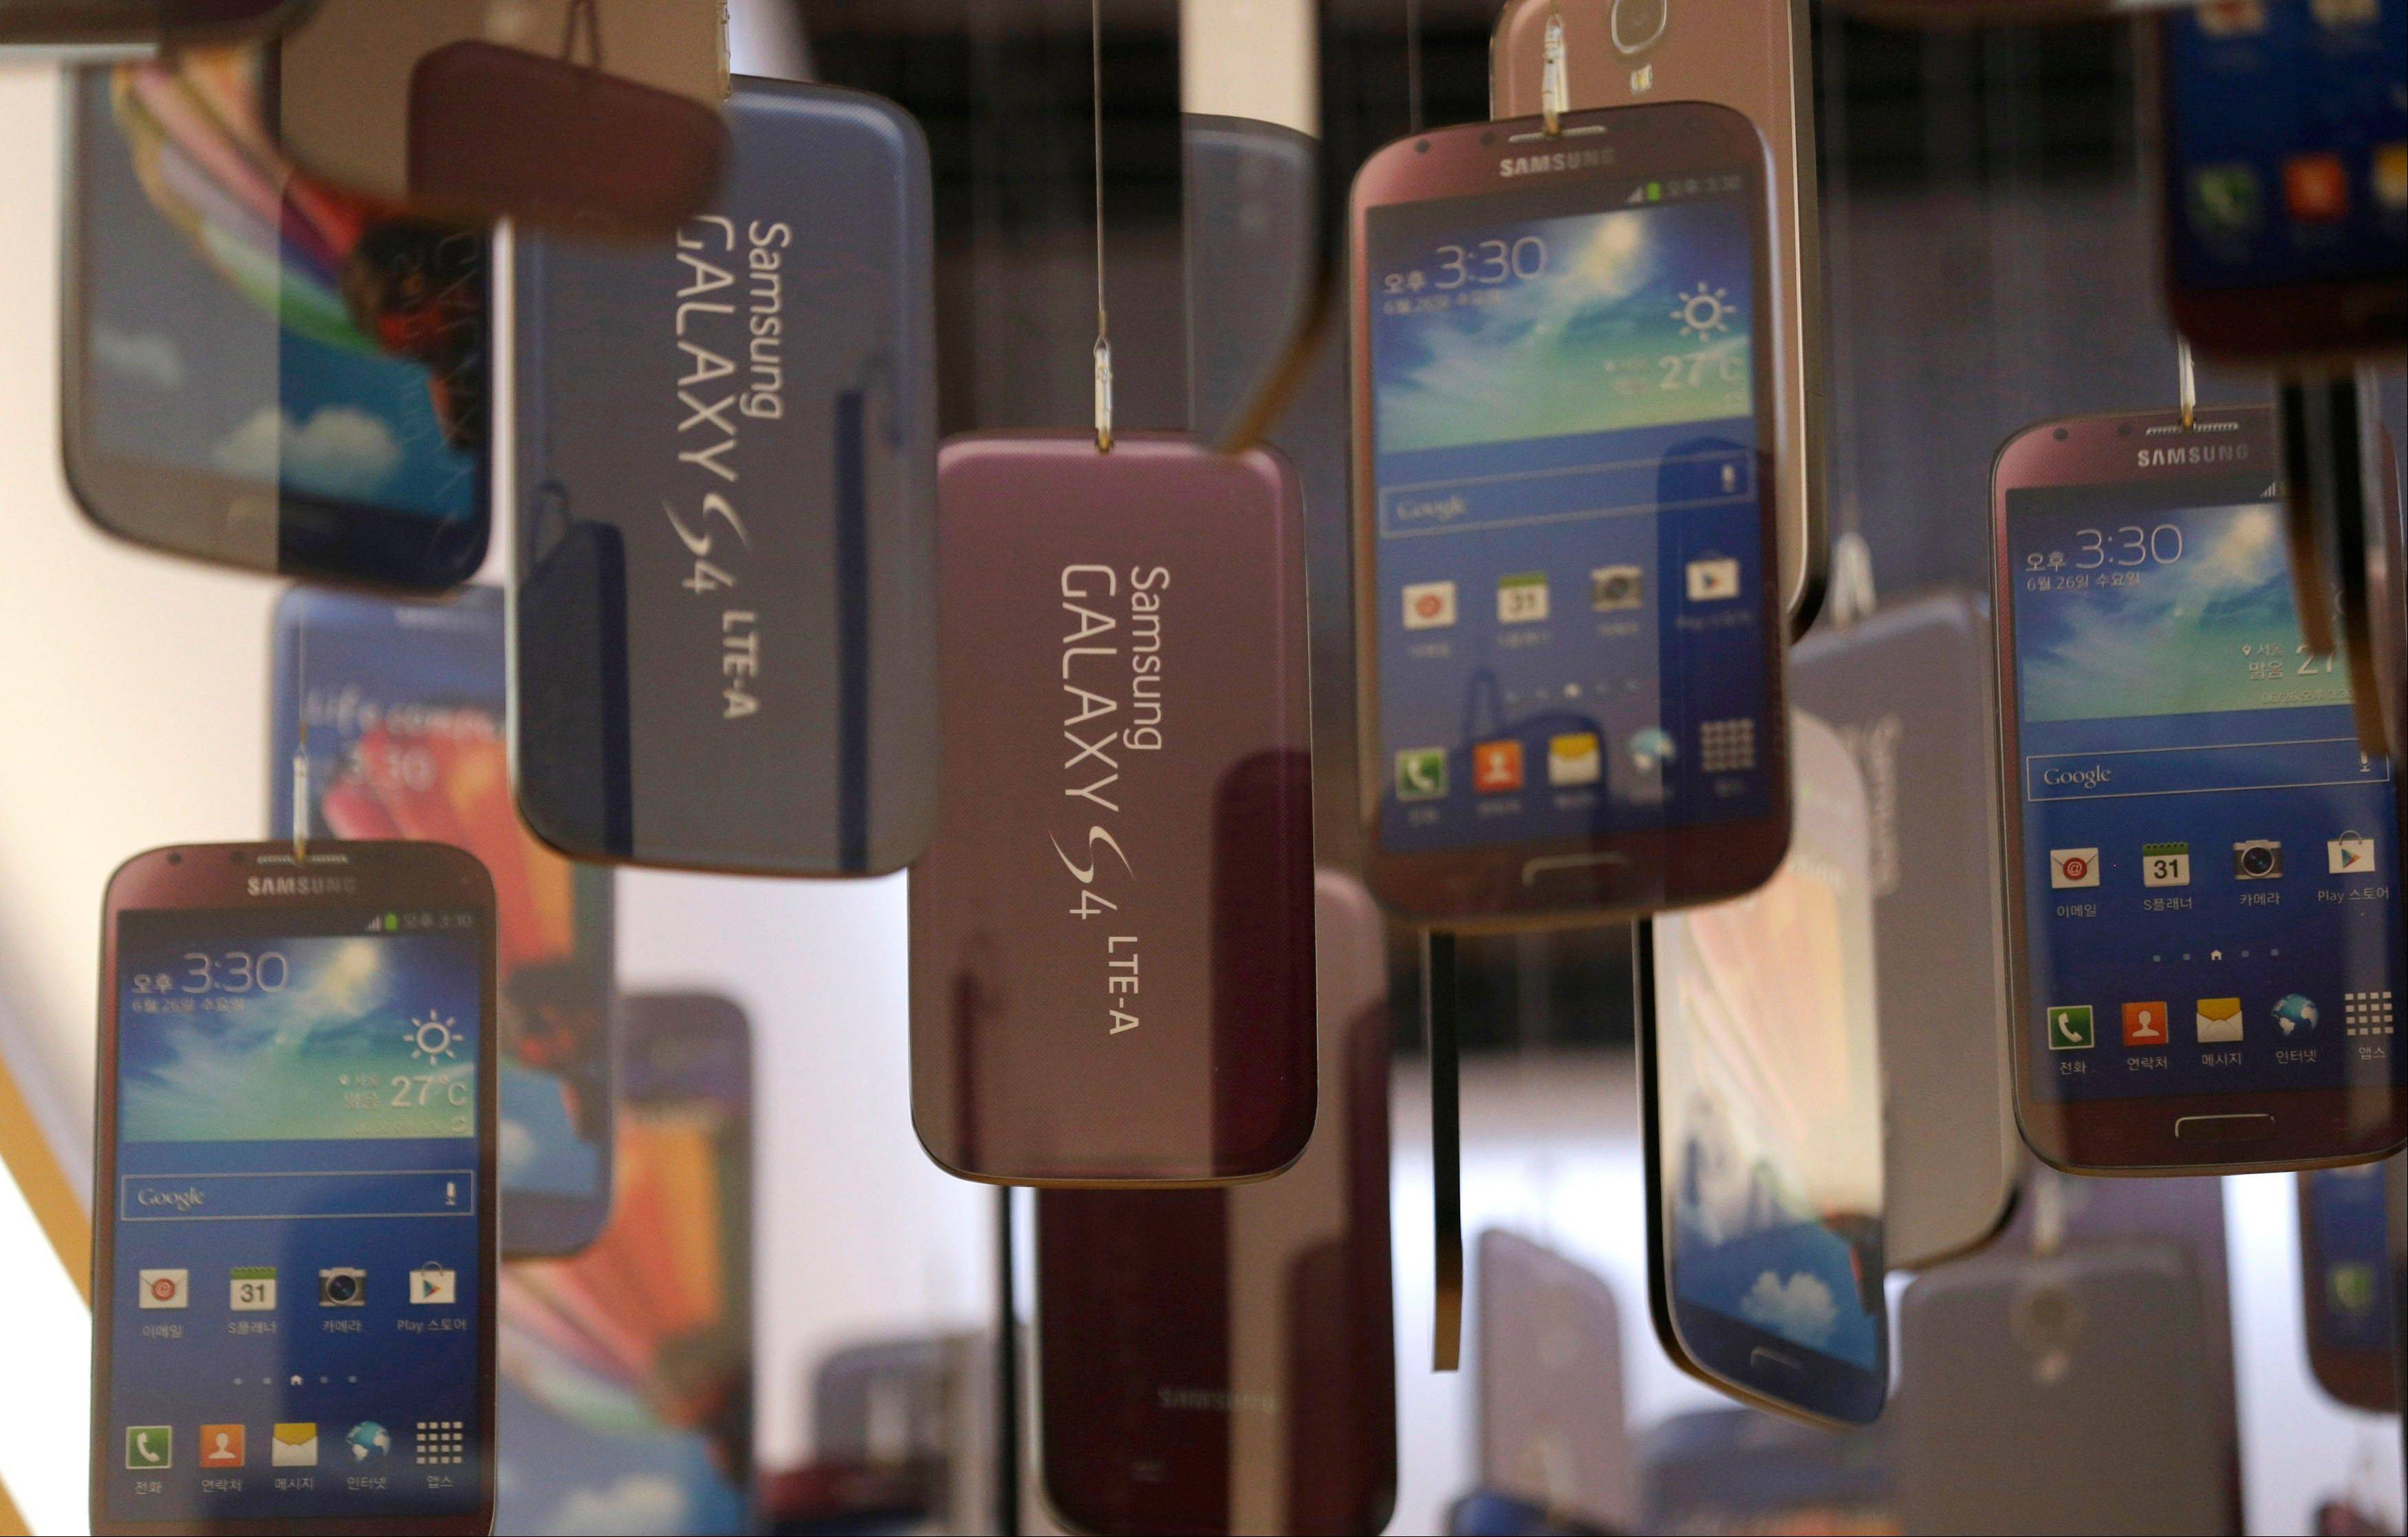 Associated Press/July 26, 2013 Models of Samsung Electronics' Galaxy S4 smart phones are displayed at a showroom of its headquarters in Seoul, South Korea.